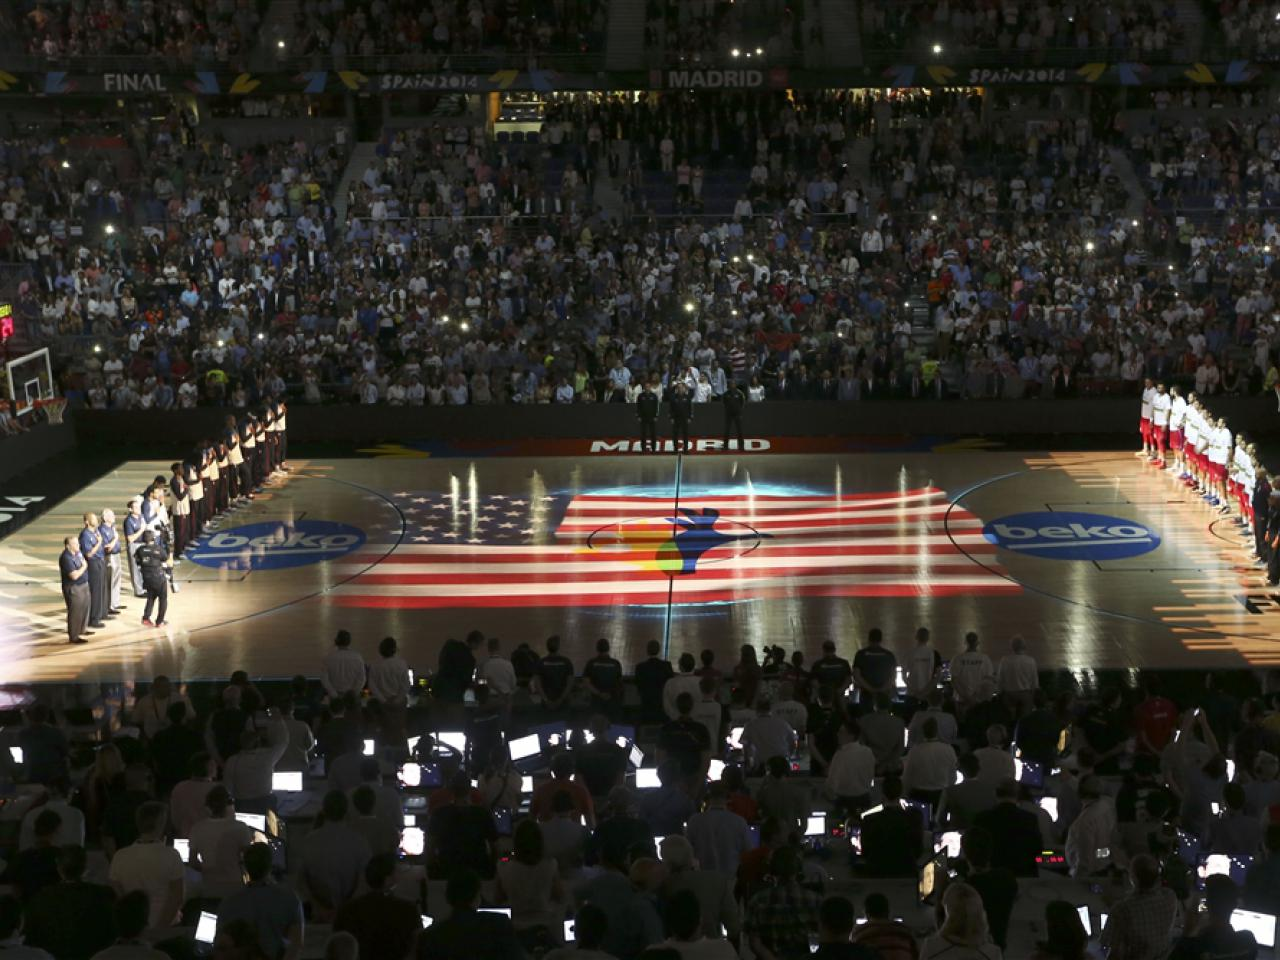 2014 FIBA Basketball World Cup